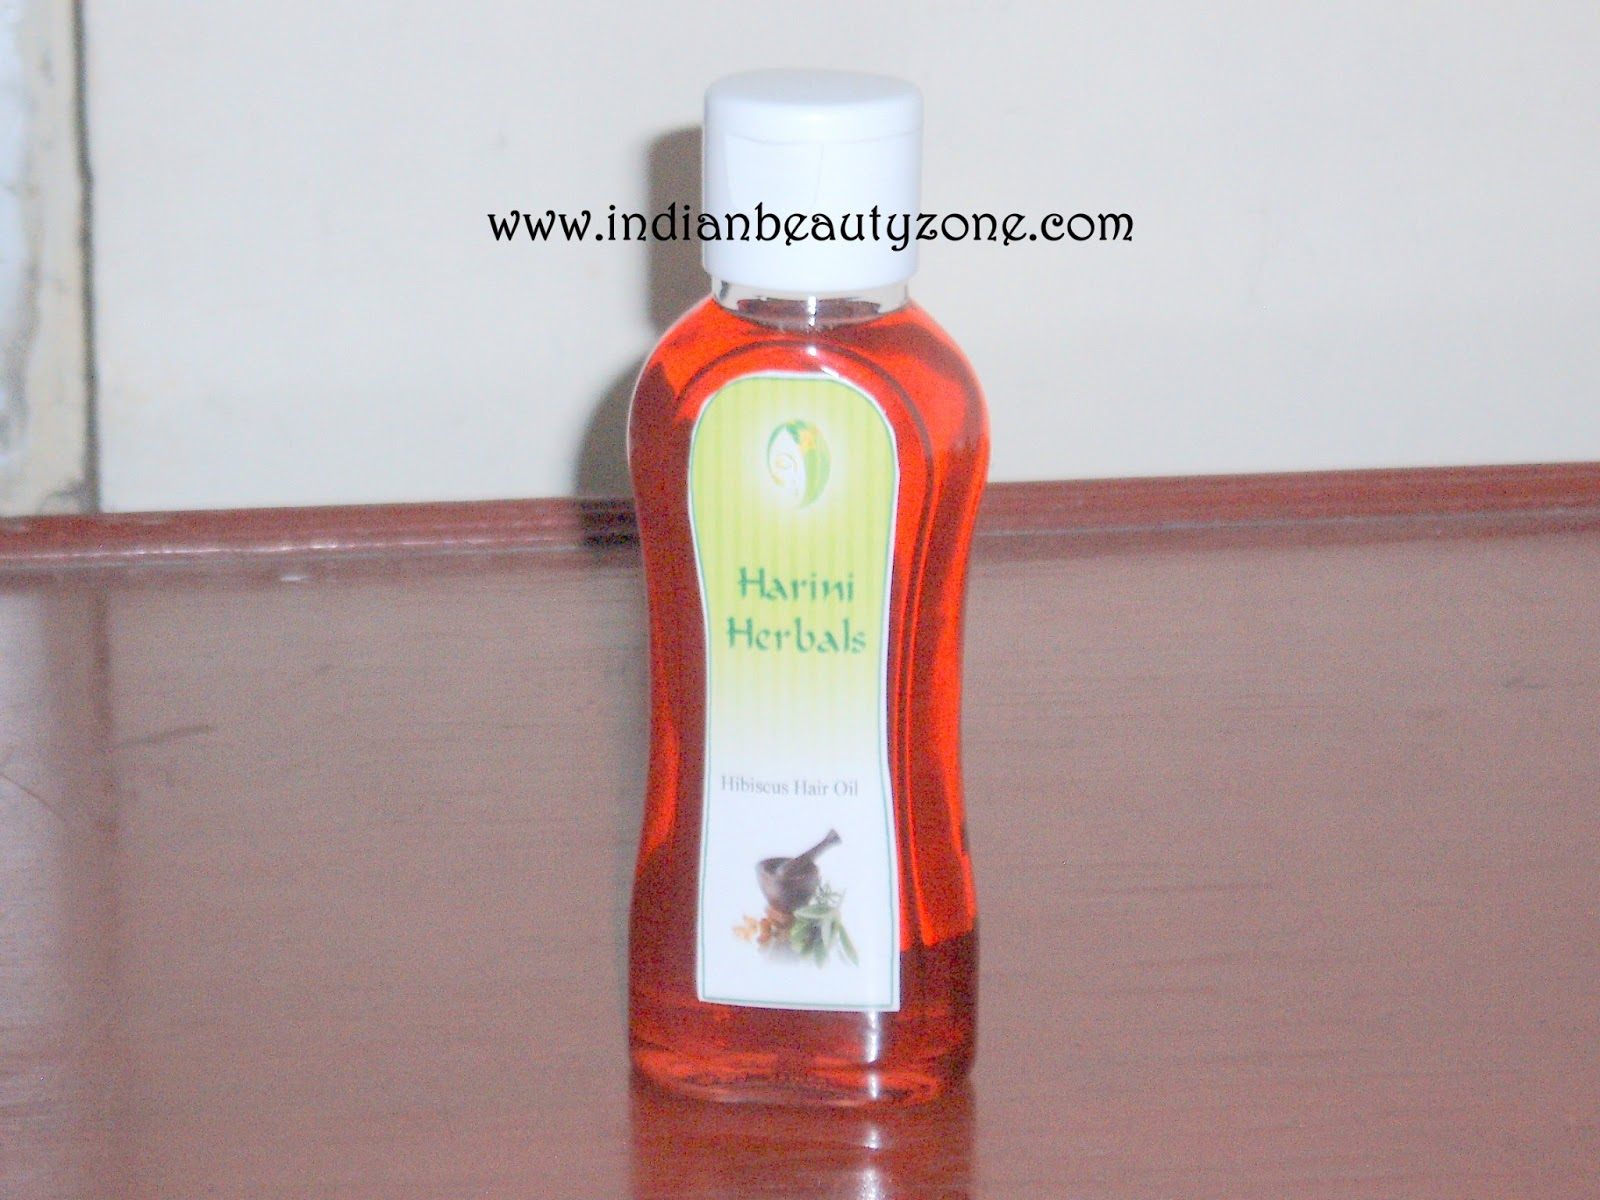 Indian beauty zone hibiscus hair oil for hair care hair fall remedies hibiscus hair oil for hair care hair fall remedies izmirmasajfo